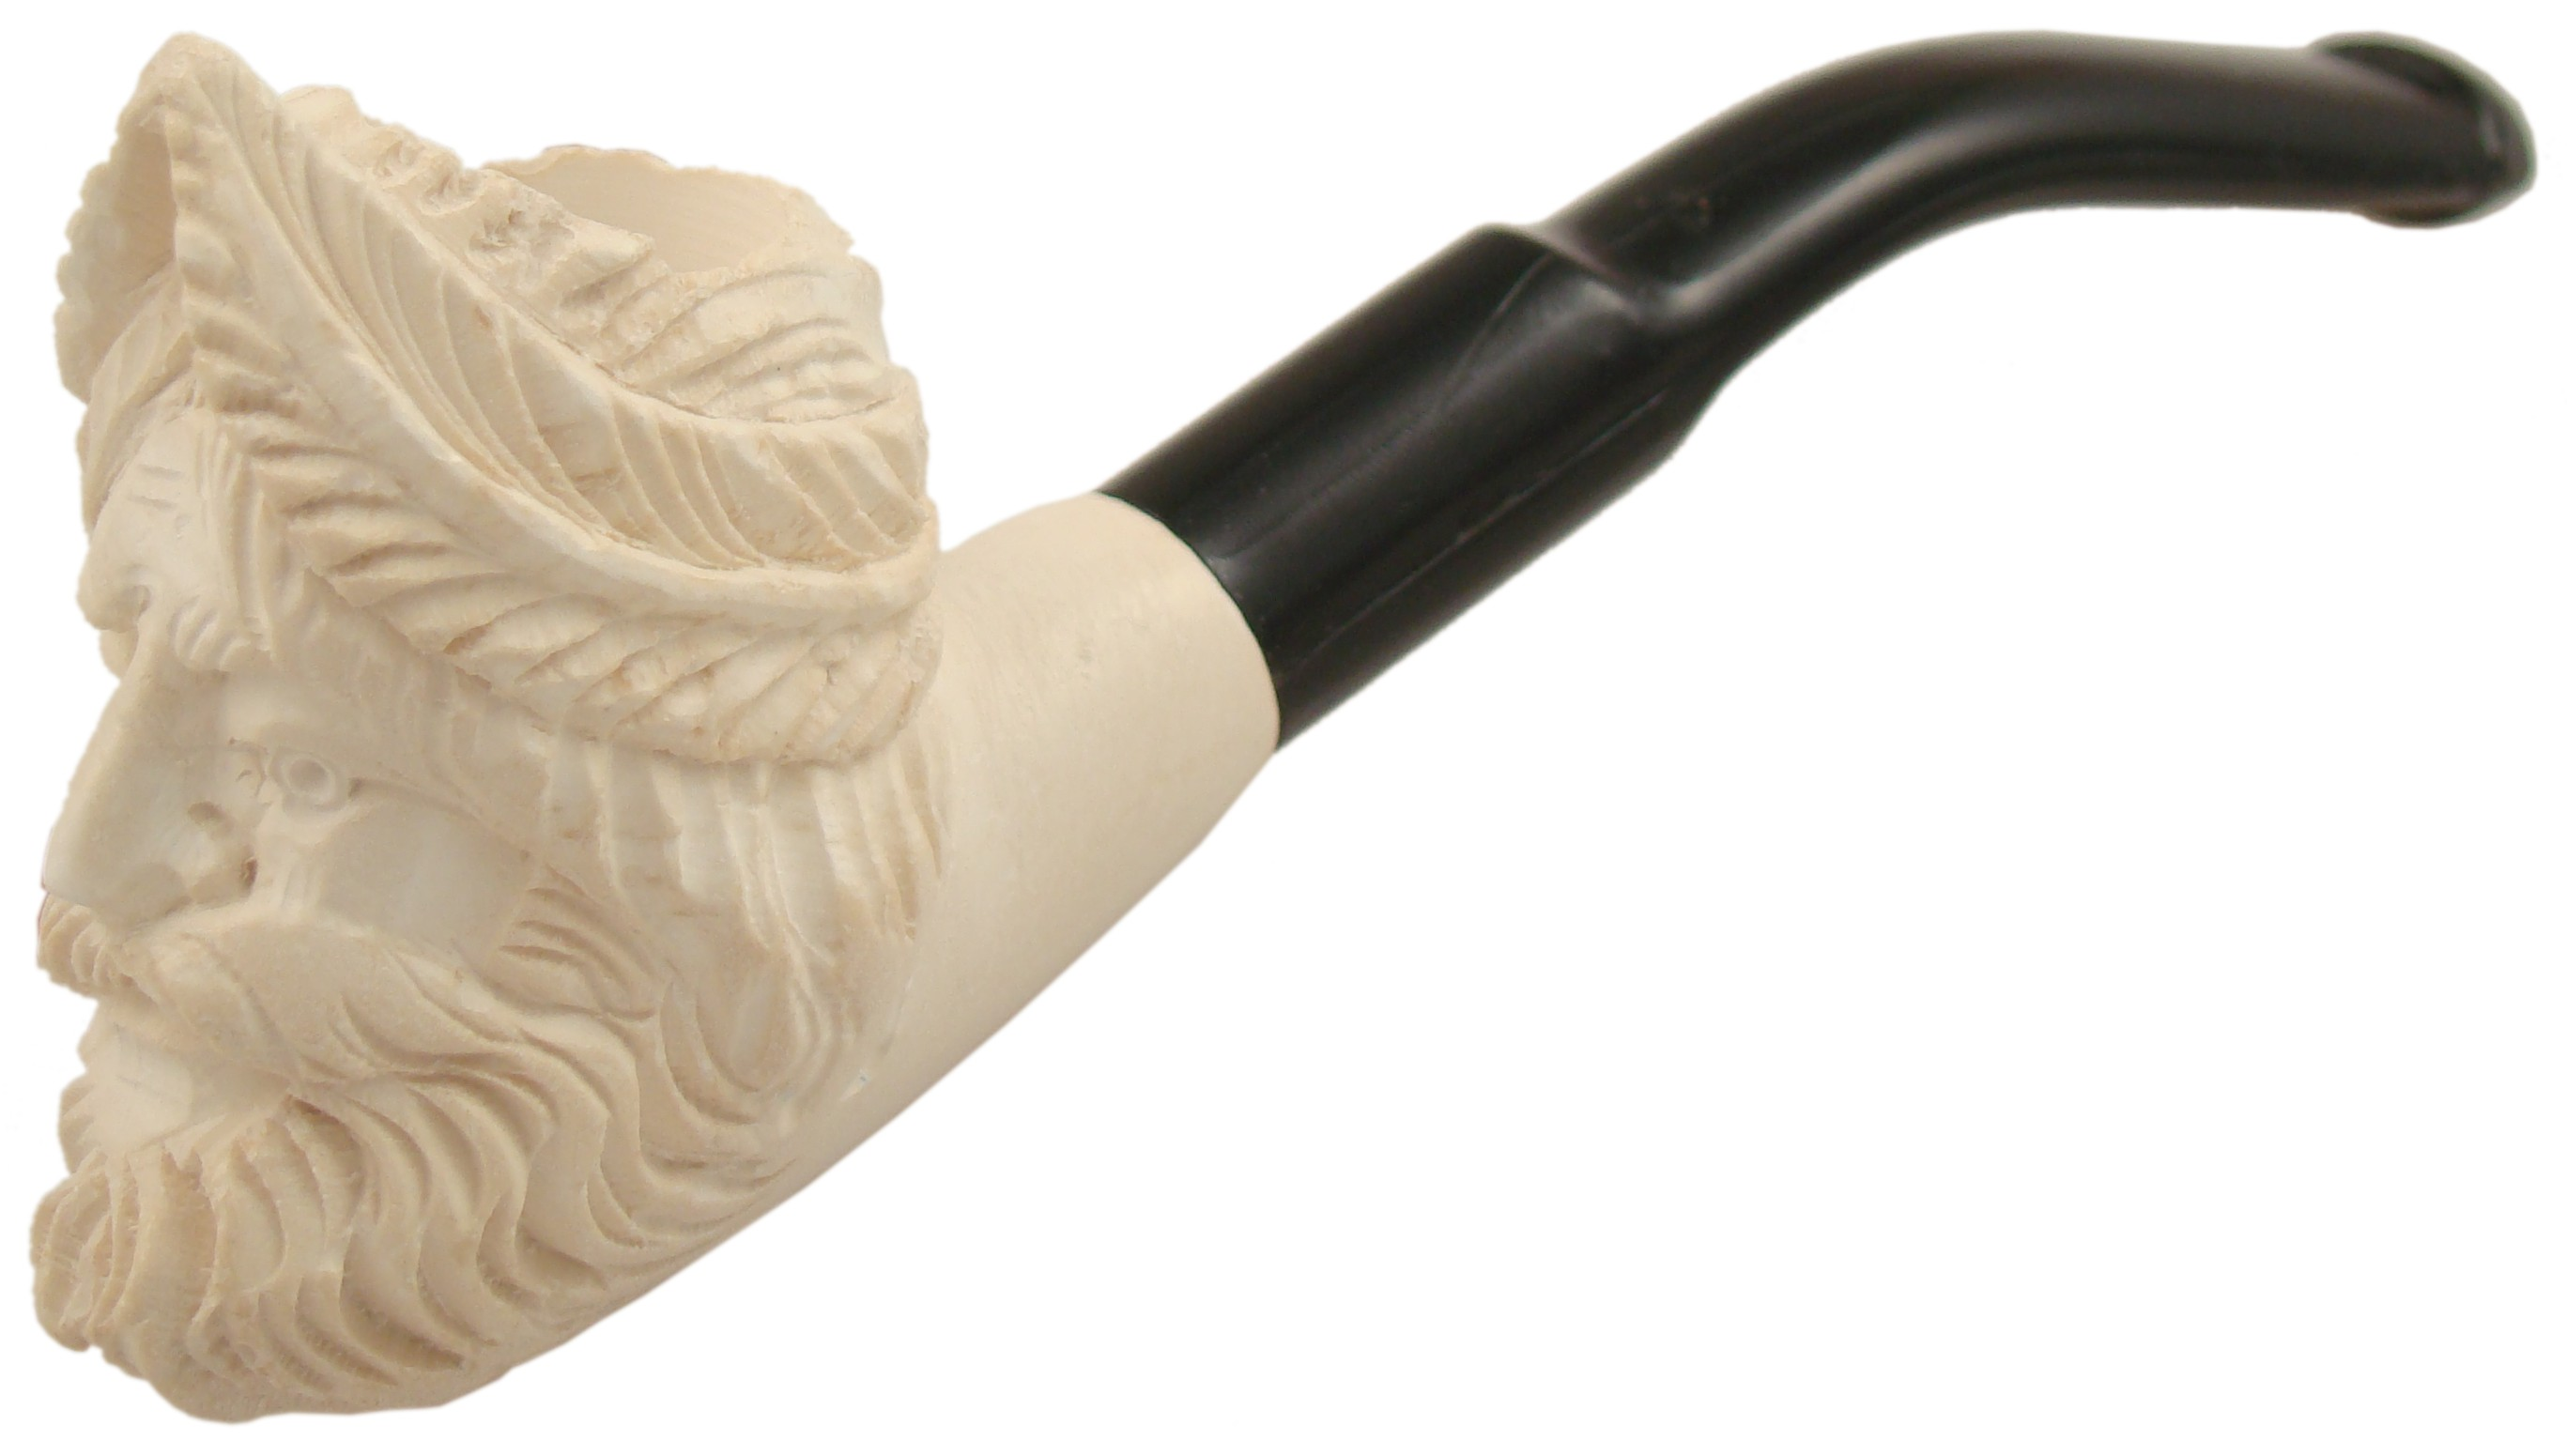 Mps046 Mini Zeus Meerschaum Tobacco Pipe